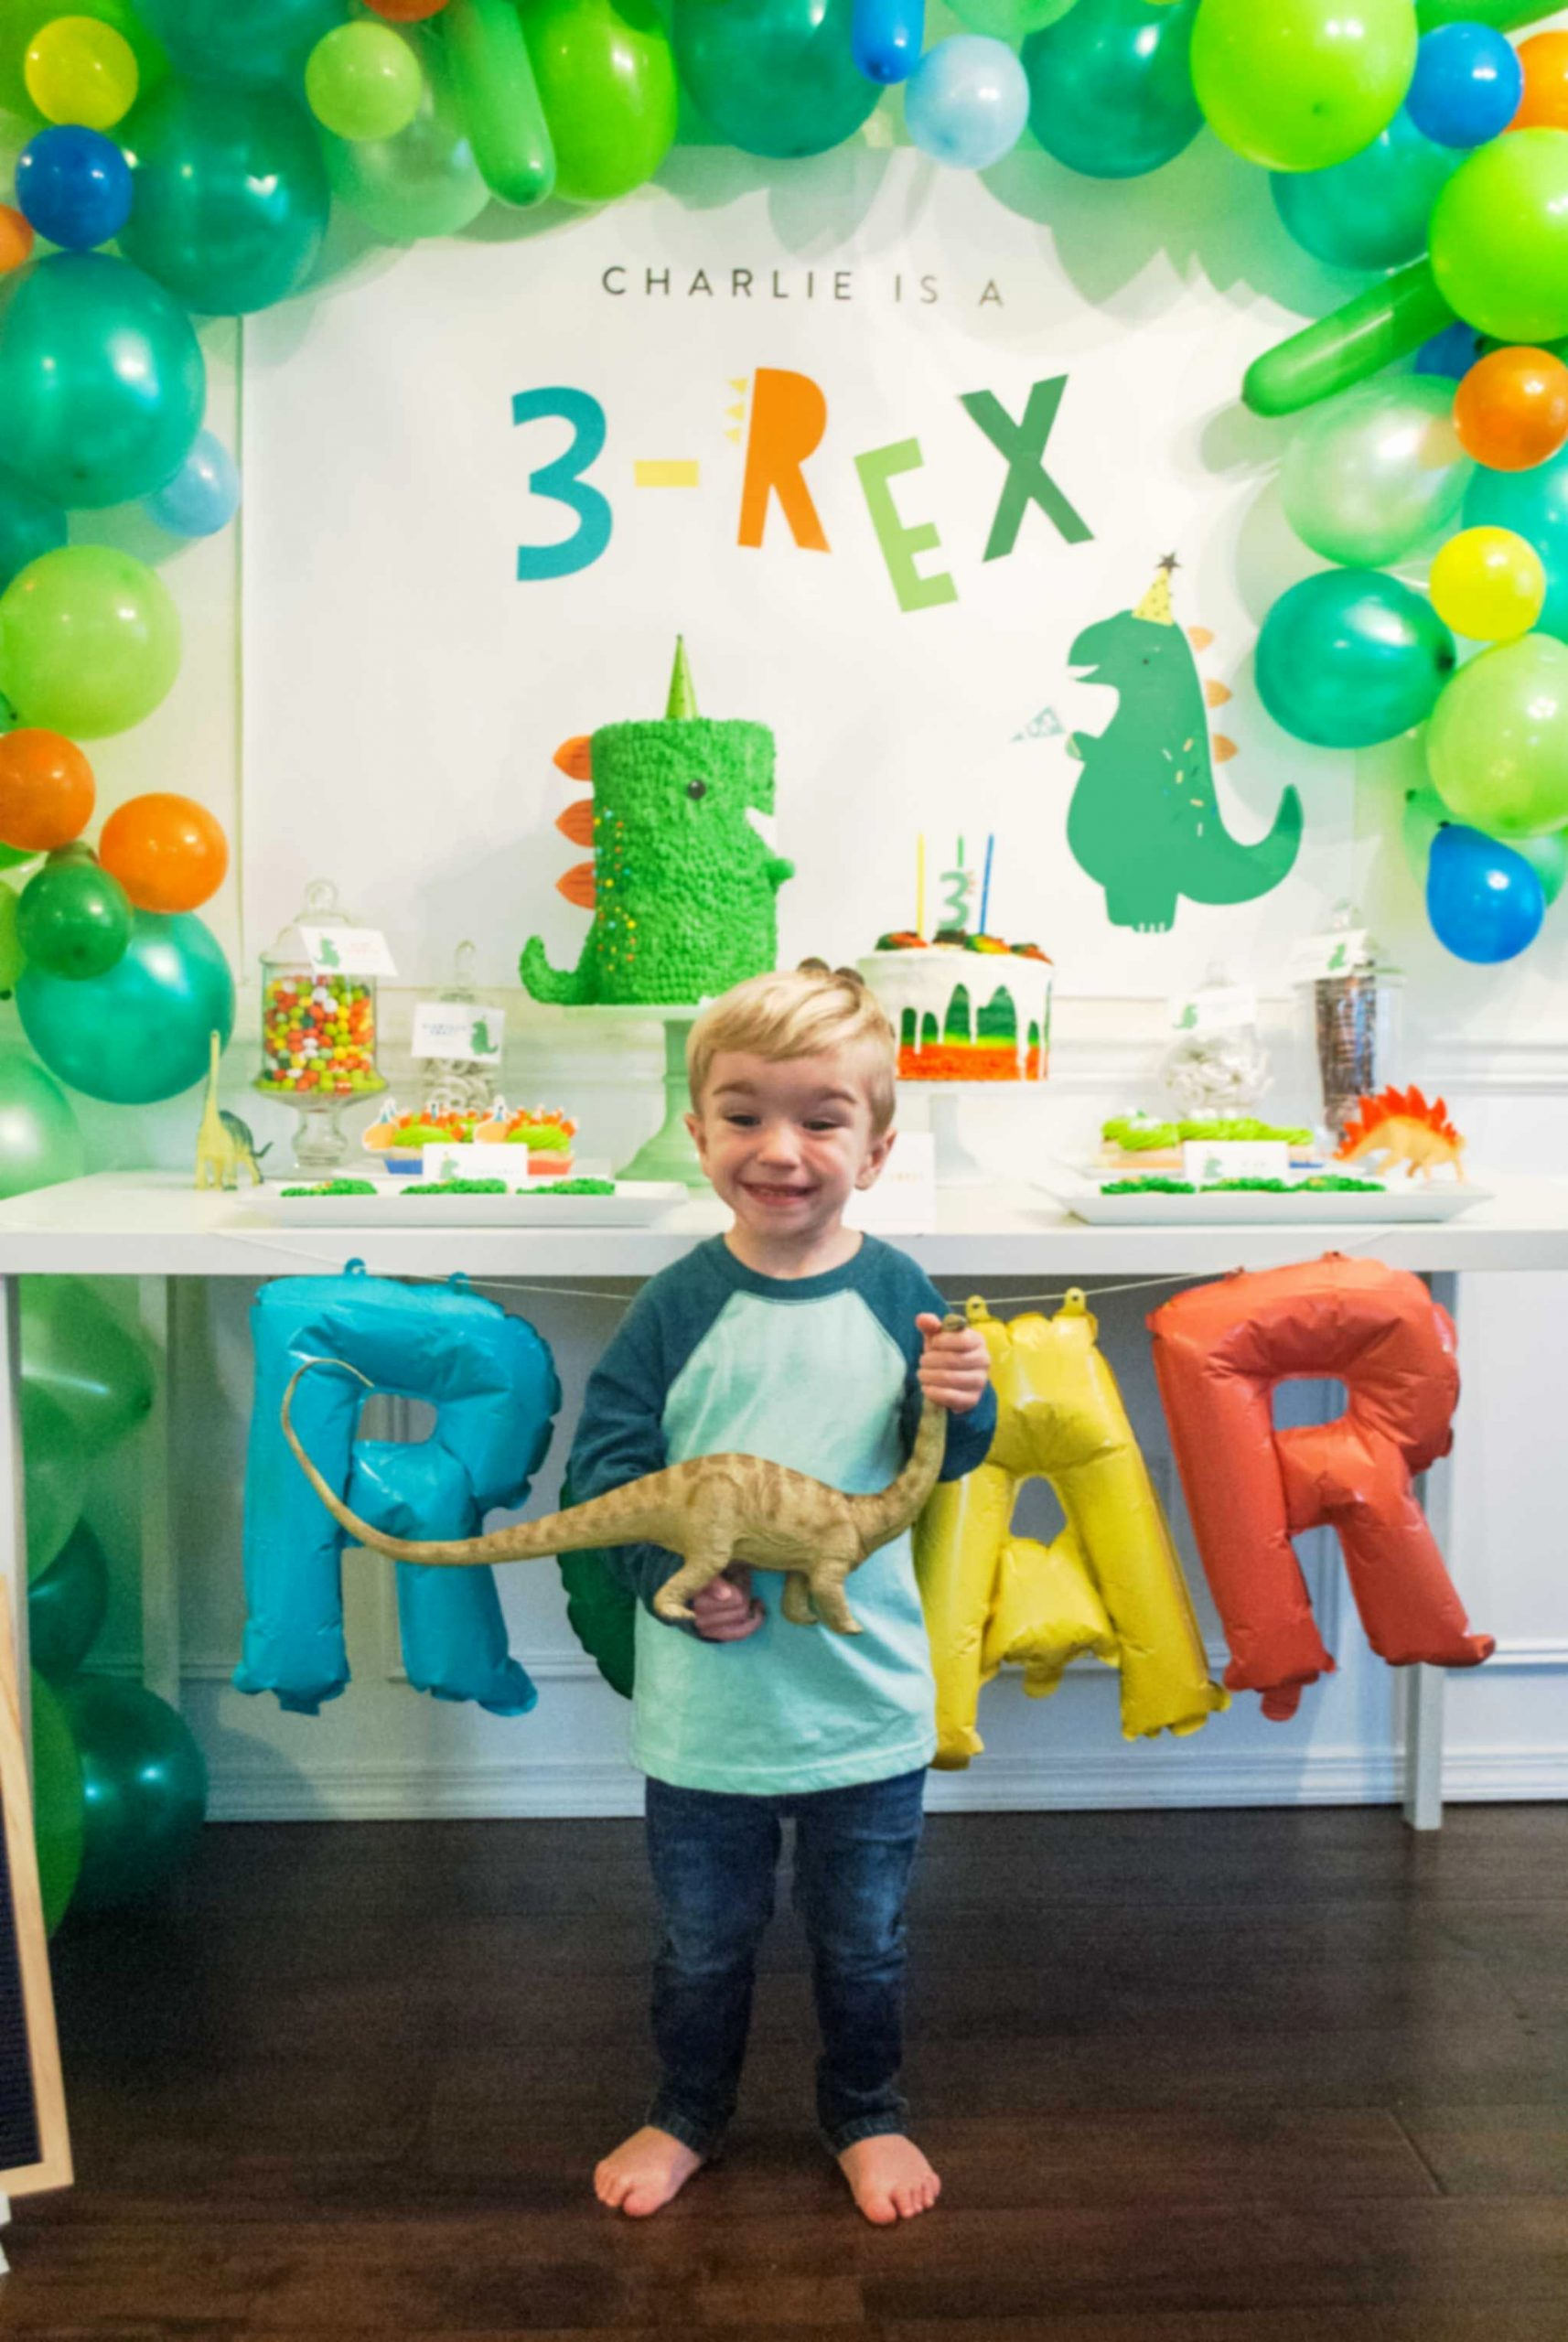 3rd Birthday Decoration Ideas Awesome This 3 Rex Birthday Party is A Roaring Good Time Project